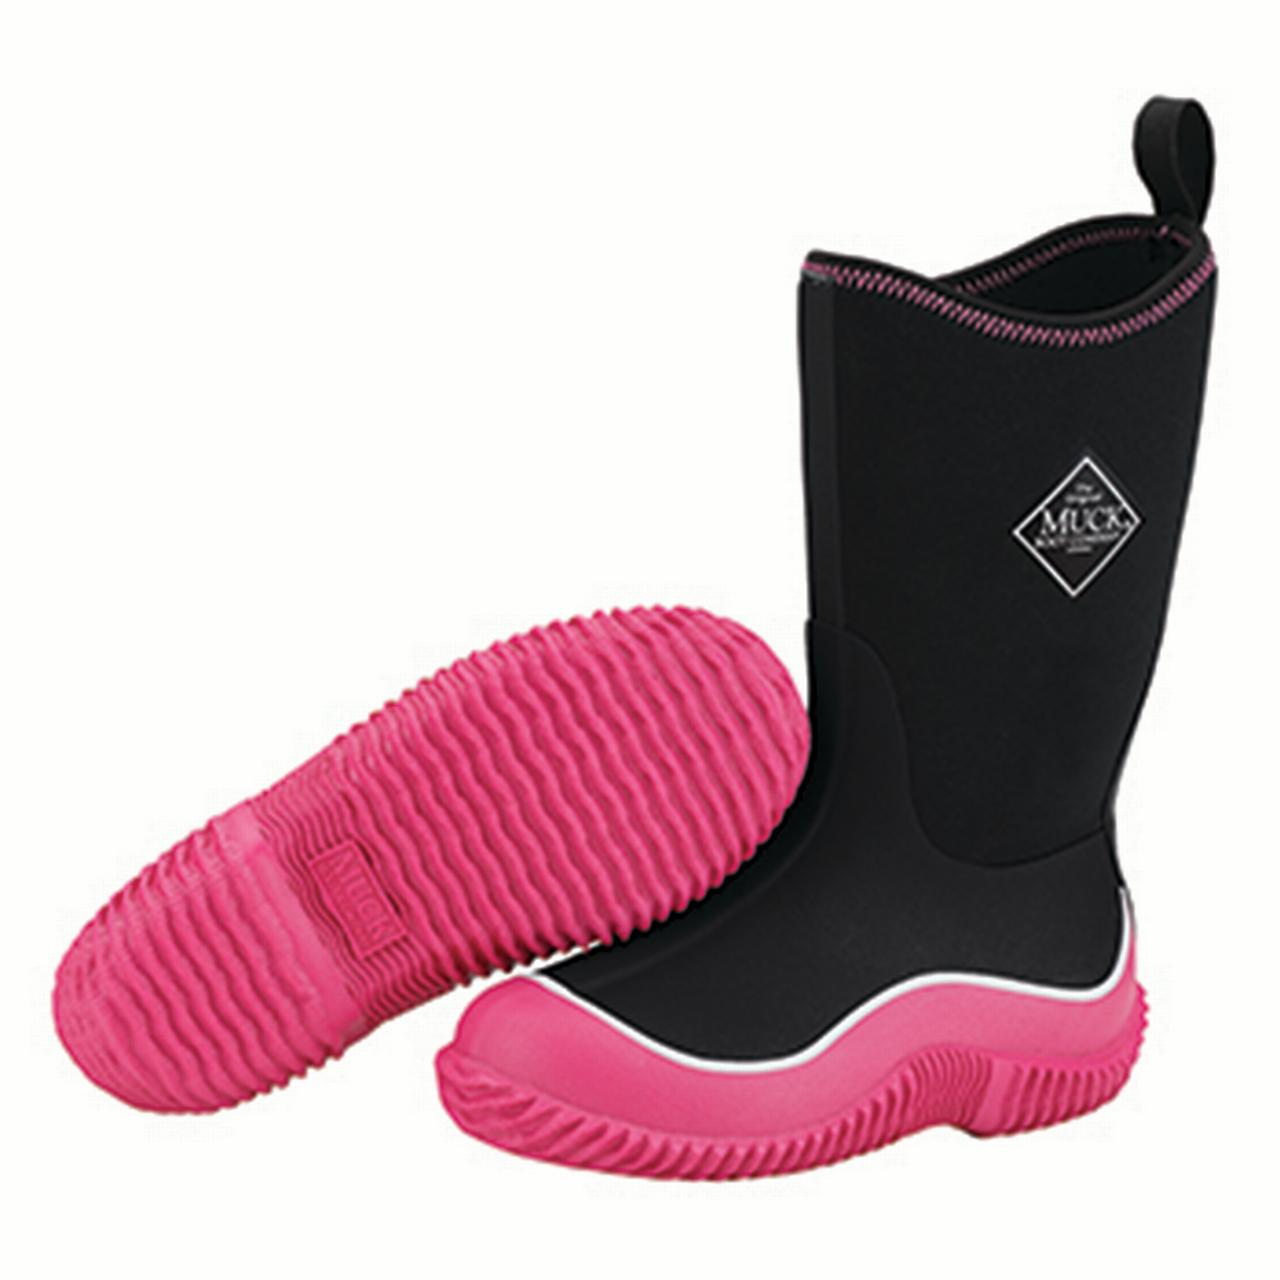 Muck Boot Kid's Hale Snow Boots Pink Rubber 7 Toddler M